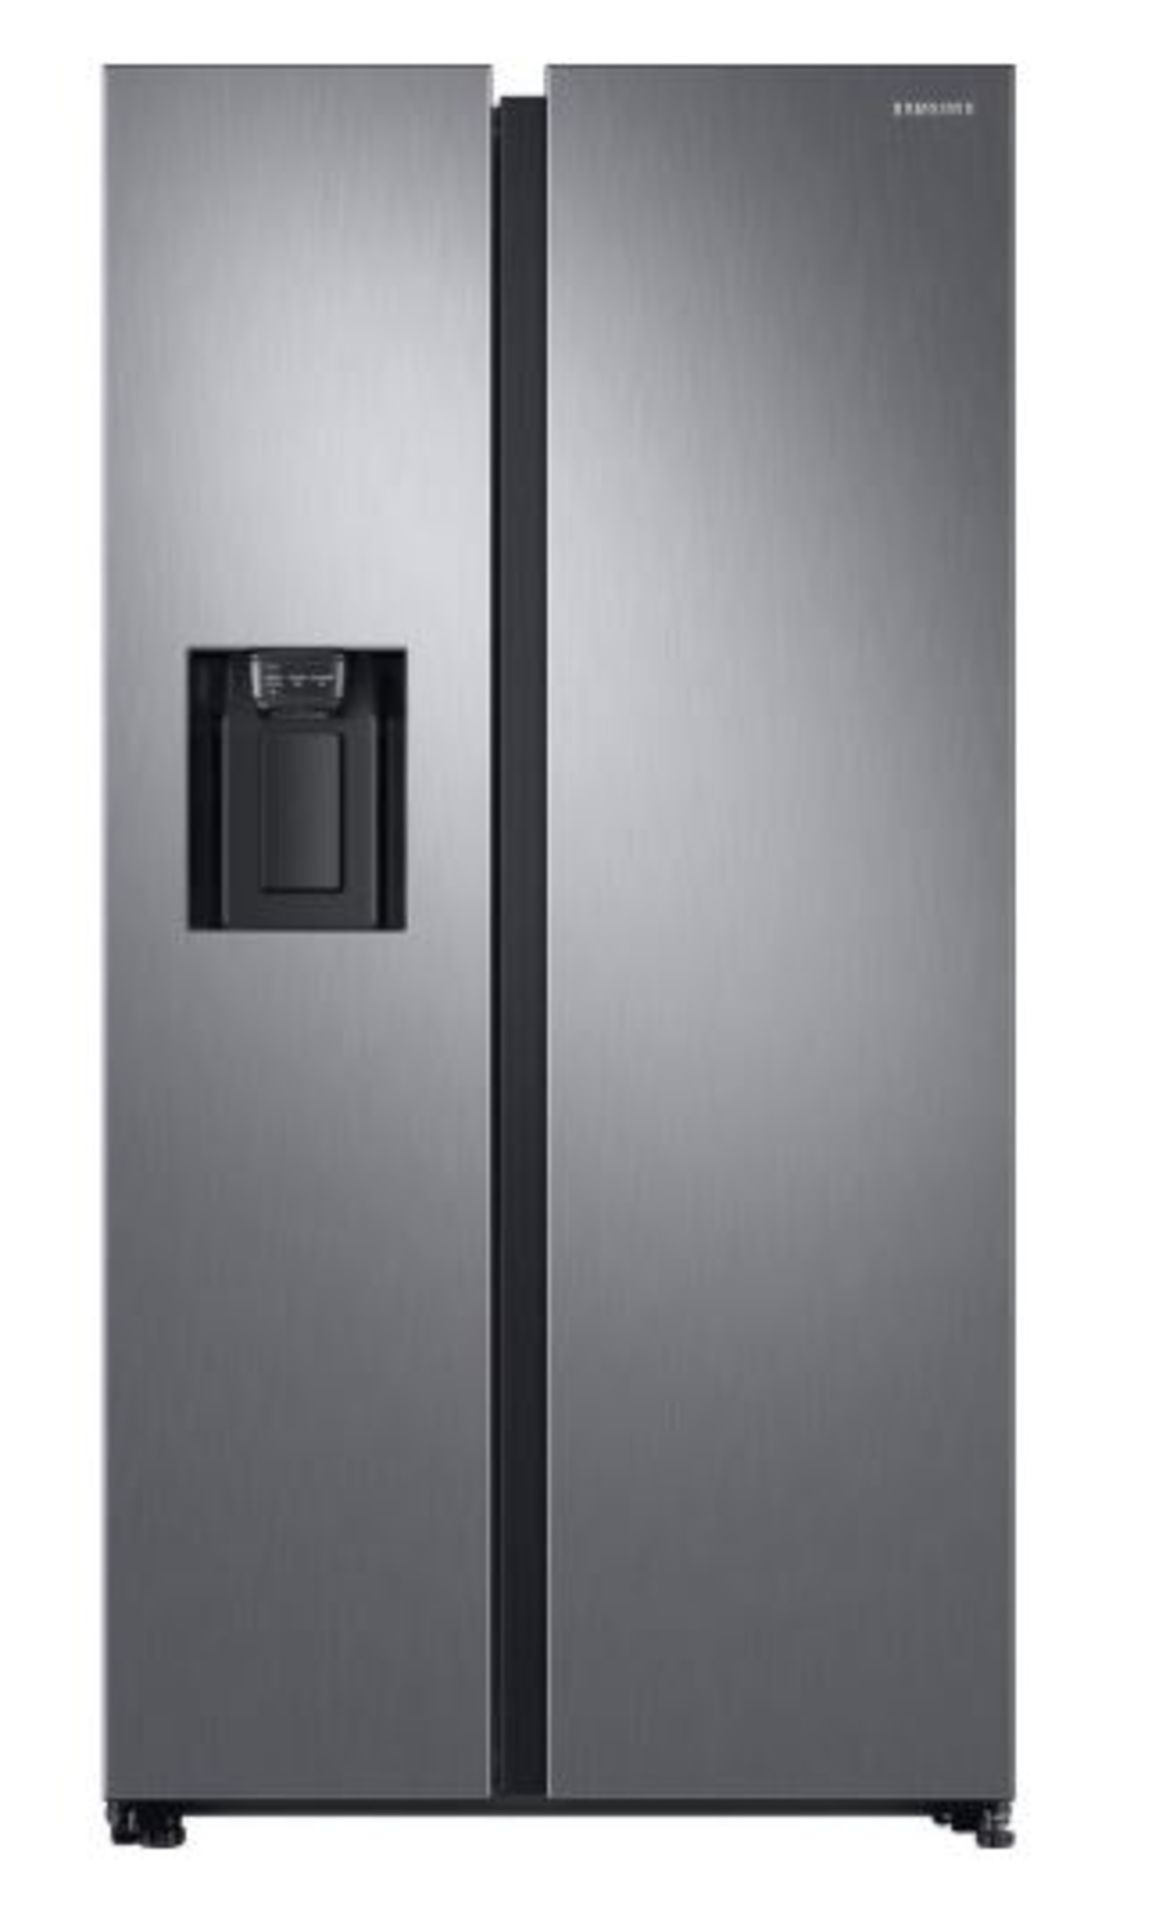 Pallet of 1 Samsung Water & Ice Fridge freezer. Latest selling price £1,799.99